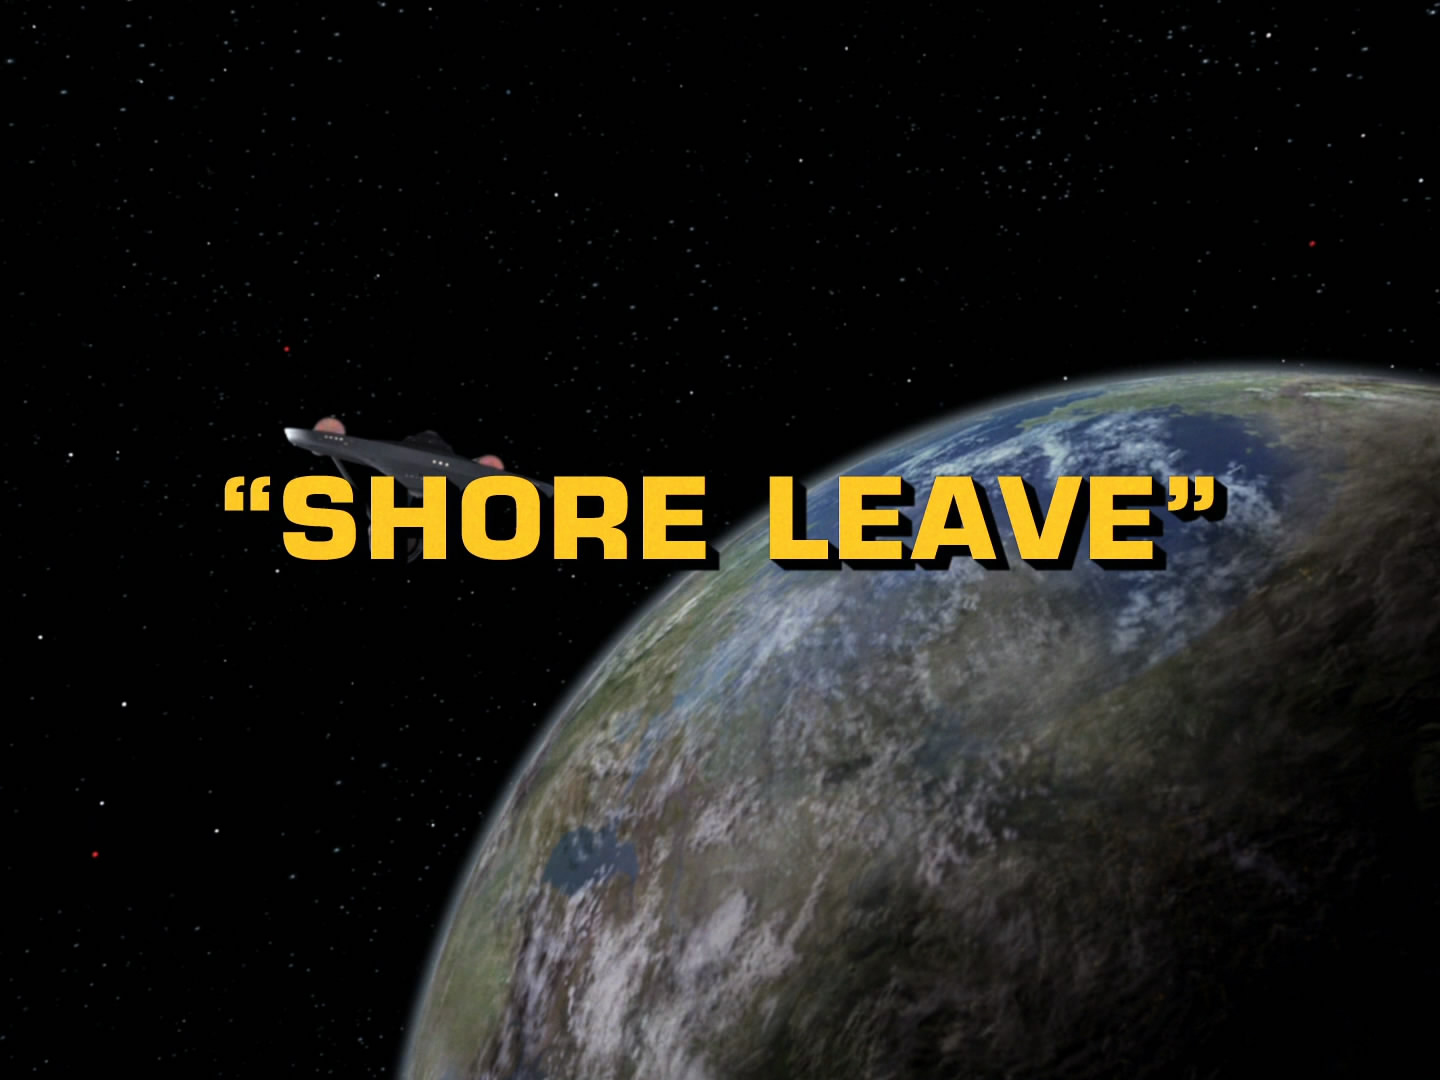 Star Trek - Shore Leave